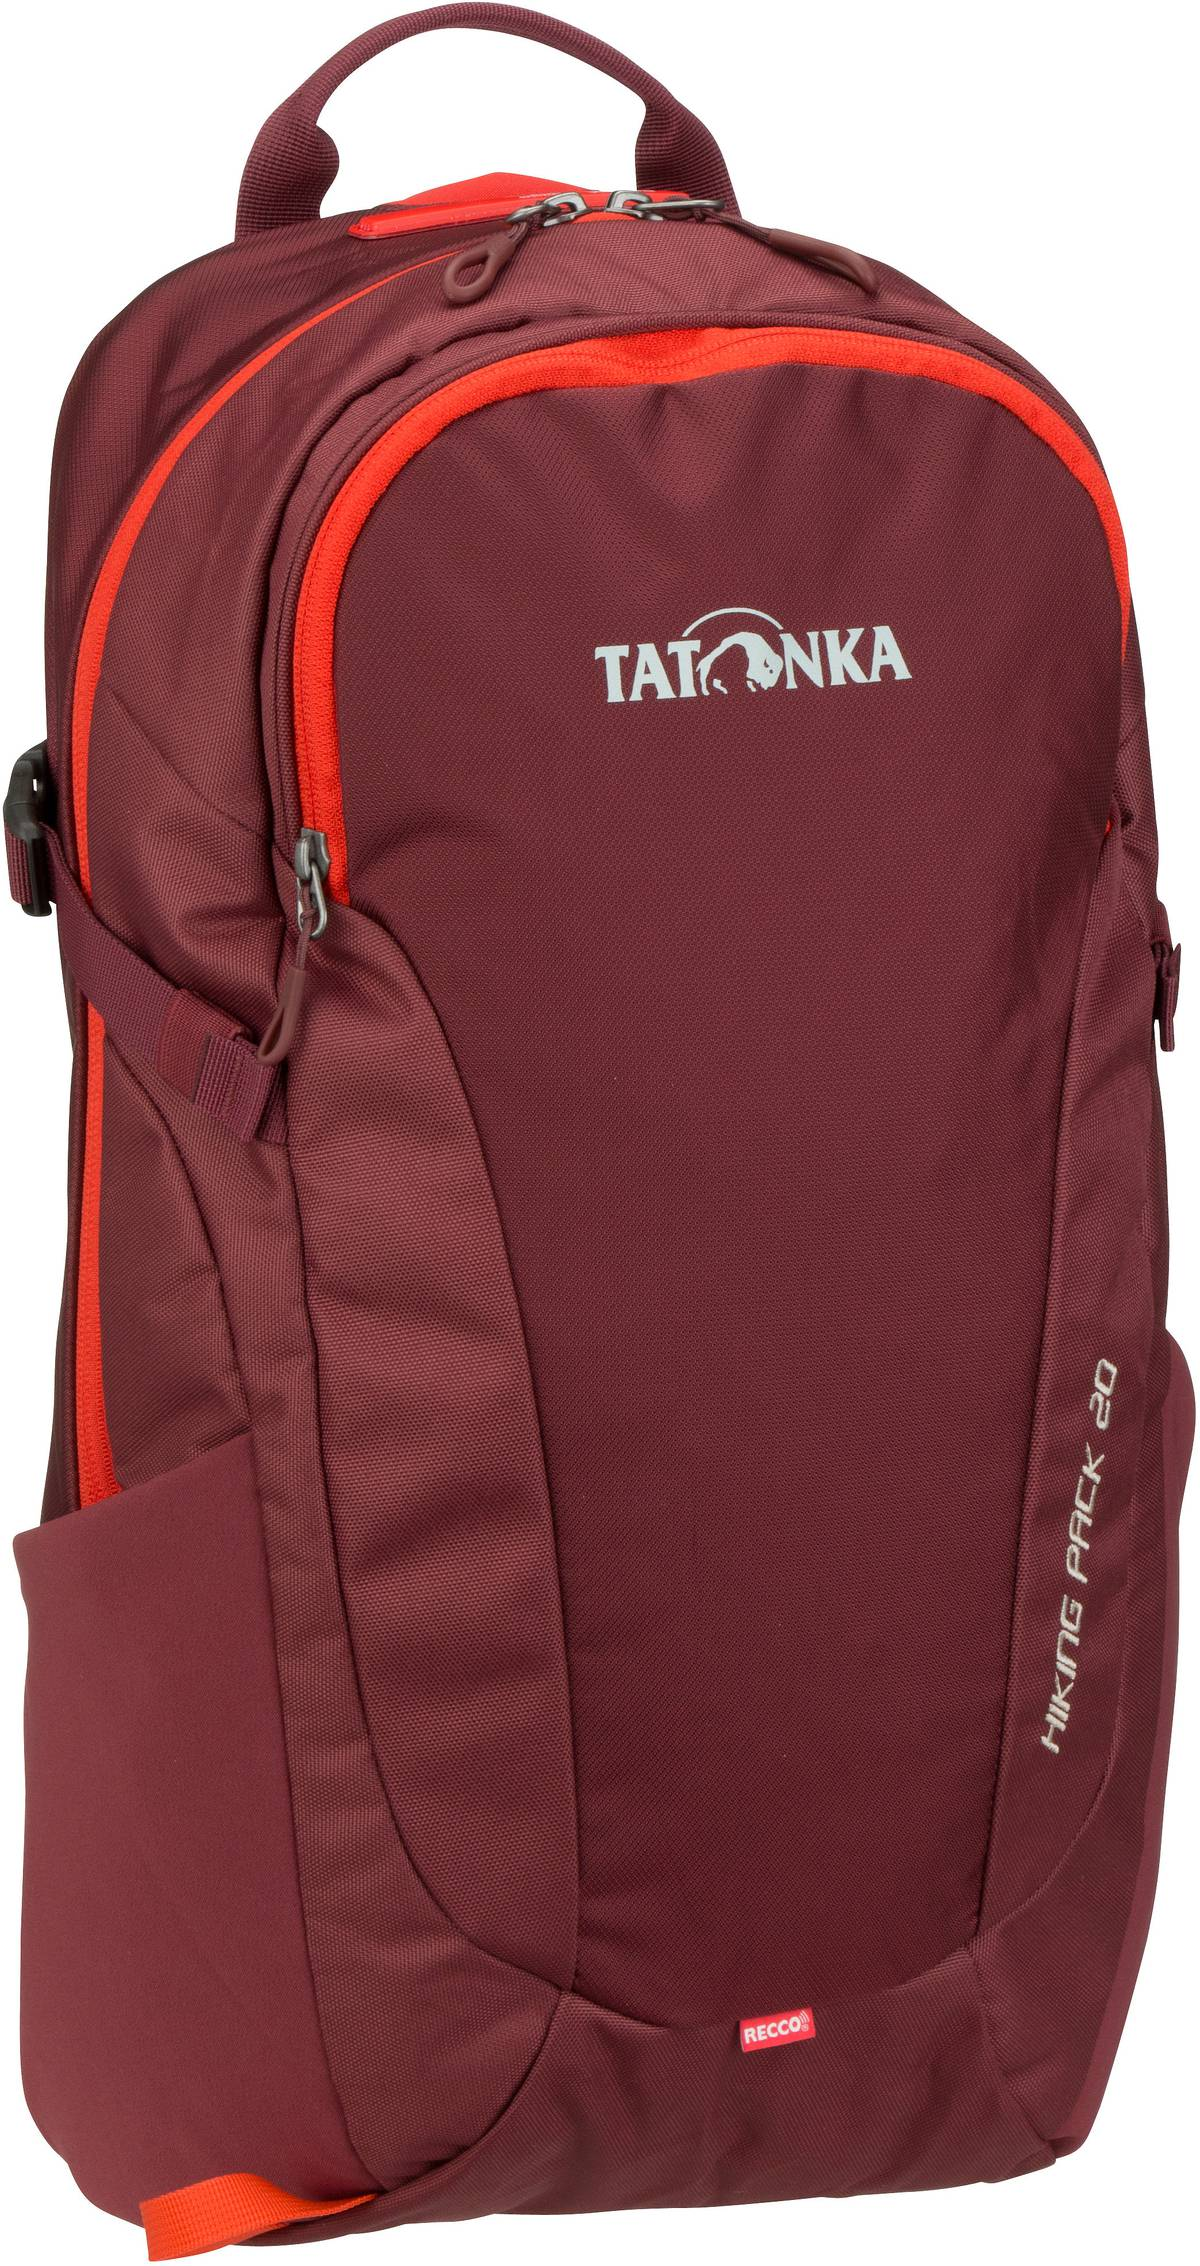 Wanderrucksack Hiking Pack 20 Bordeaux Red (20 Liter)